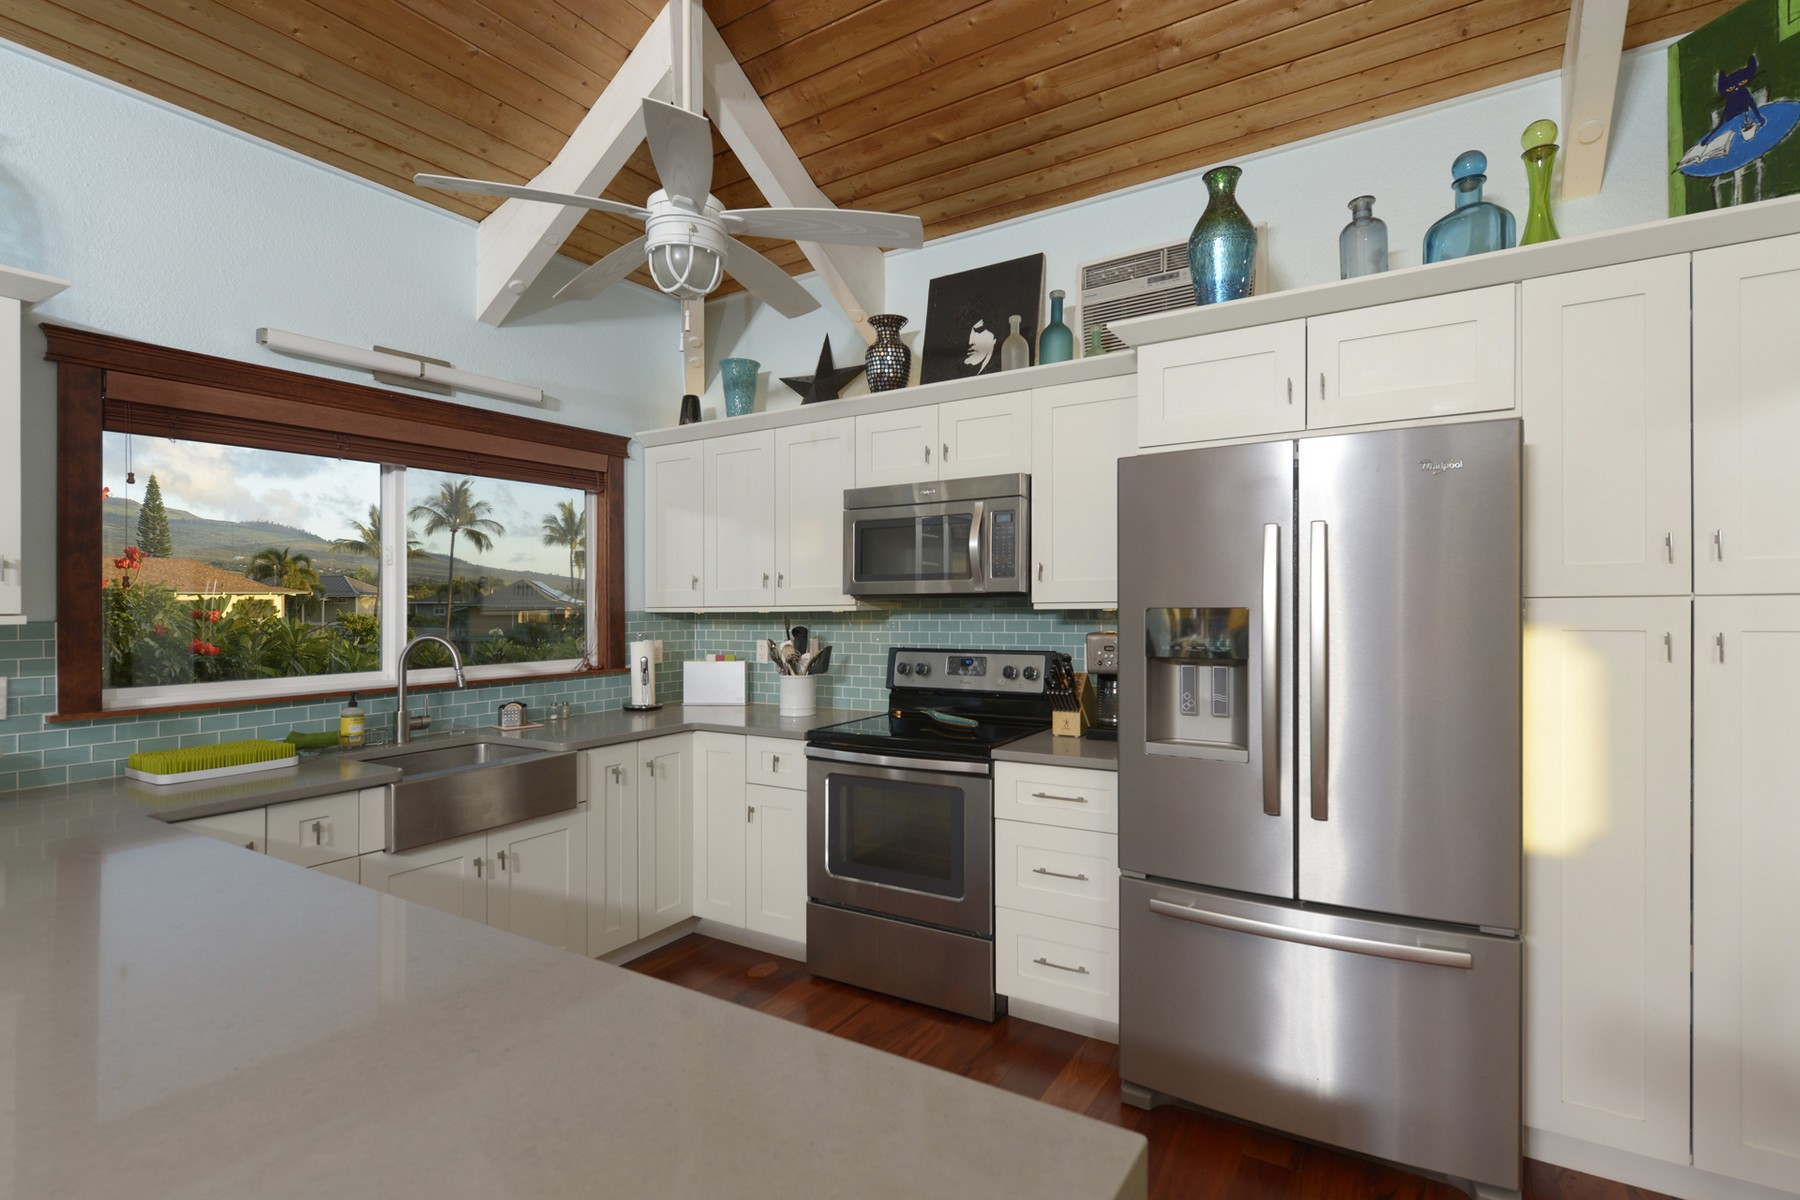 واحد منزل الأسرة للـ Sale في Ocean View Home In Kihei 2181 Auina Place, Kihei, Hawaii, 96753 United States